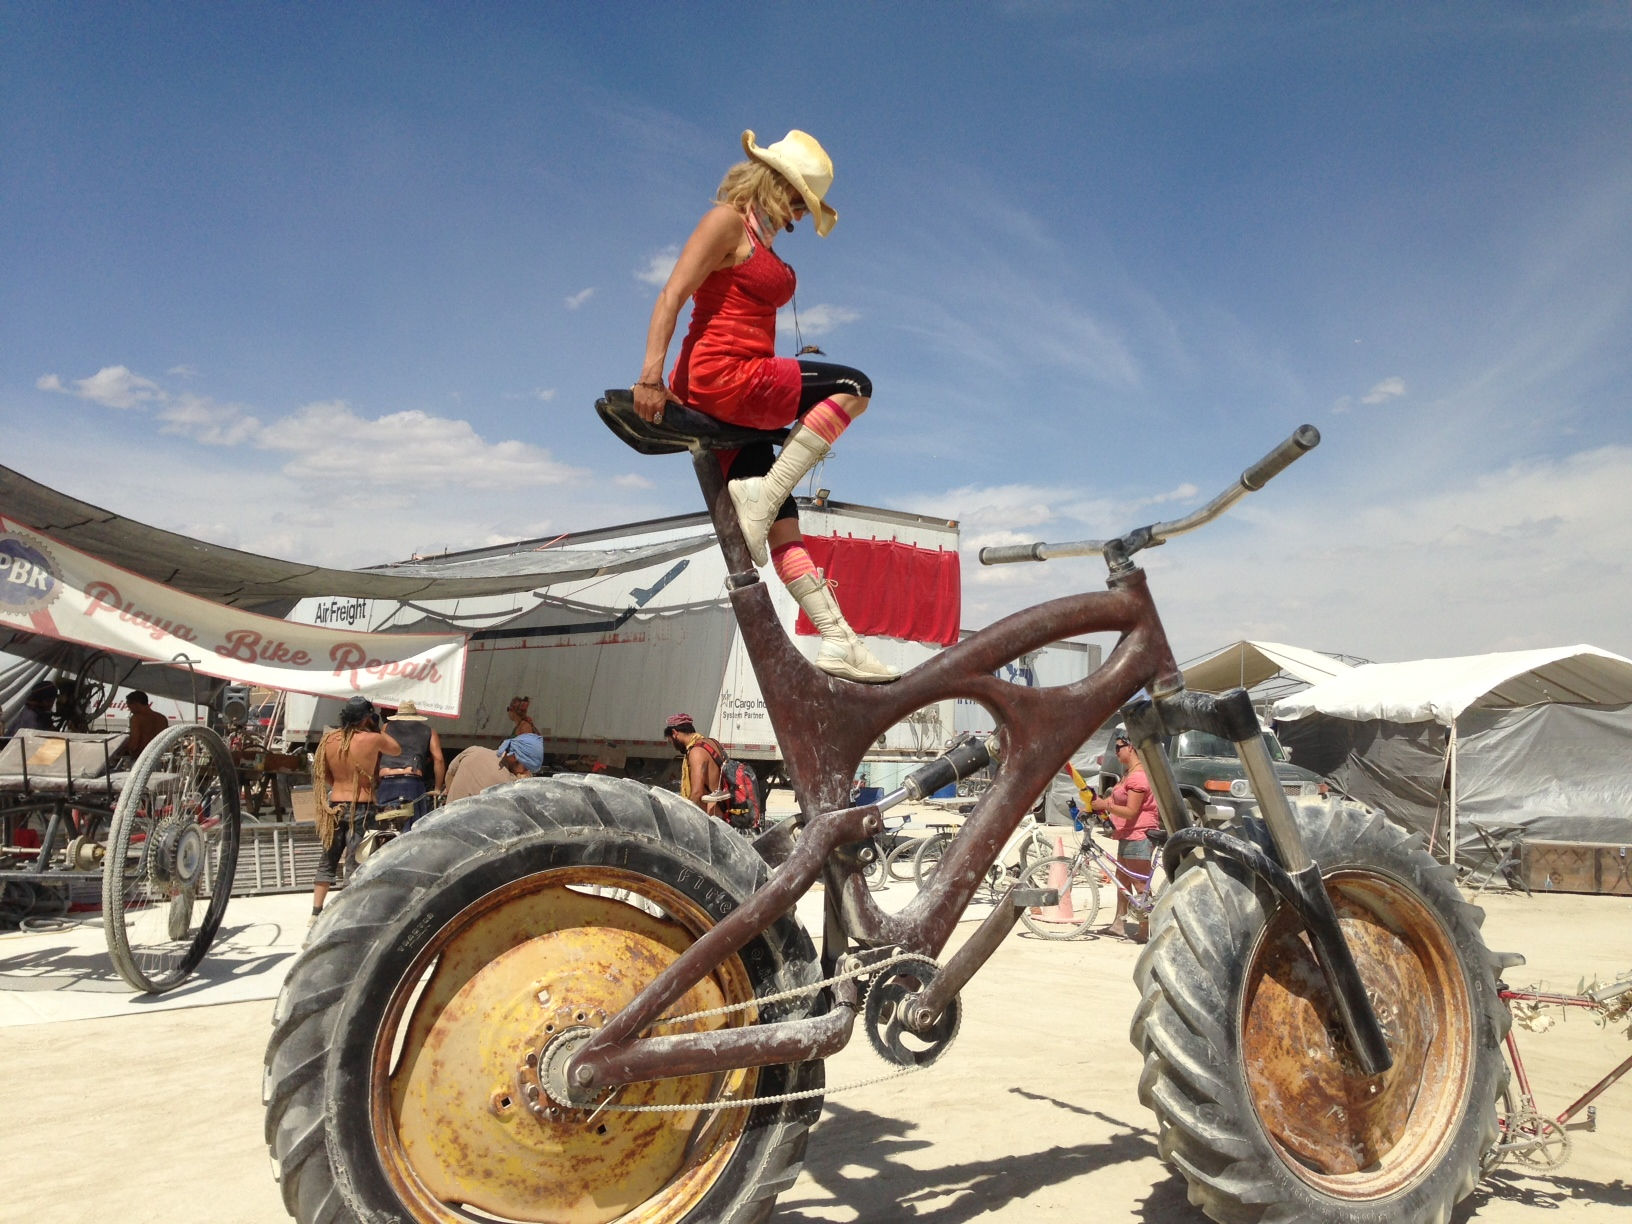 Yours Truly on Giant Bike. Burning Man 2014. Black Rock City, NV.